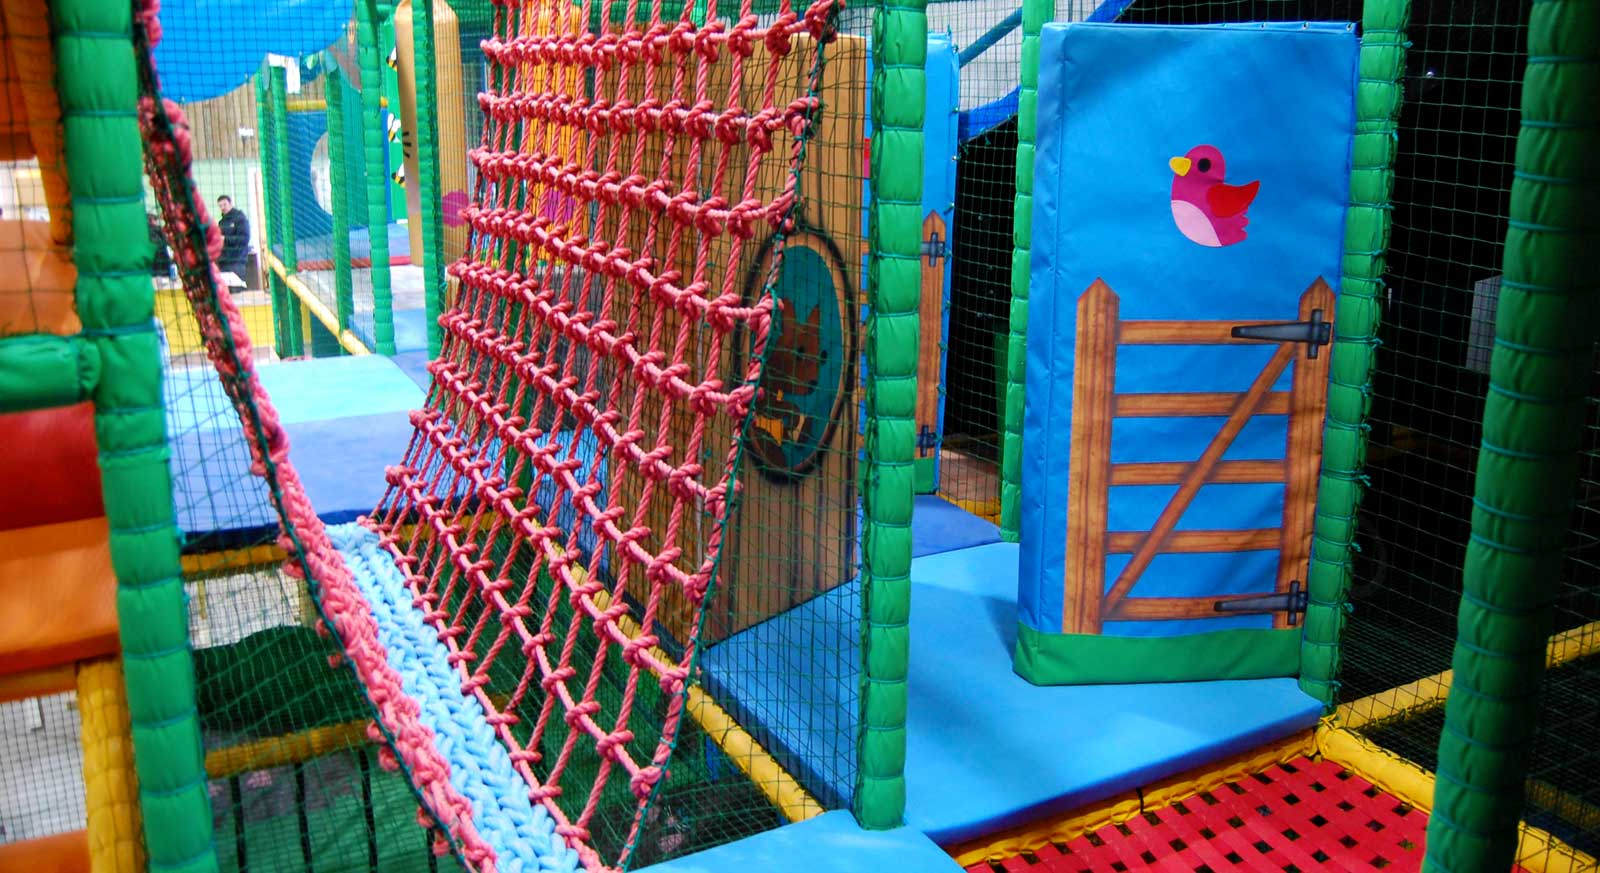 Soft Brick Indoor play centre Treetops, Golborne